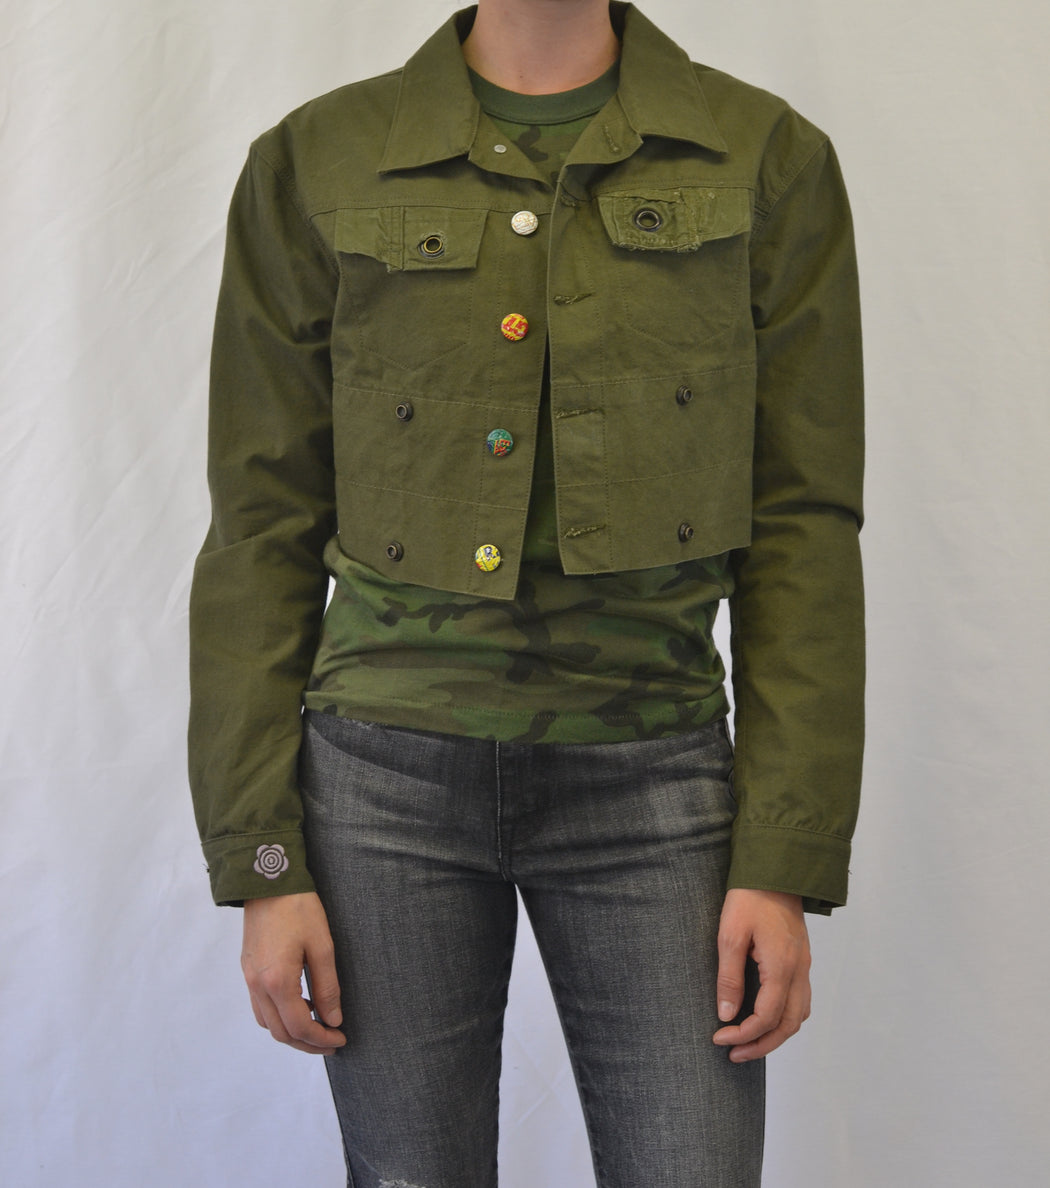 Up-Cycled and Recycled Cropped Army Tent Jacket